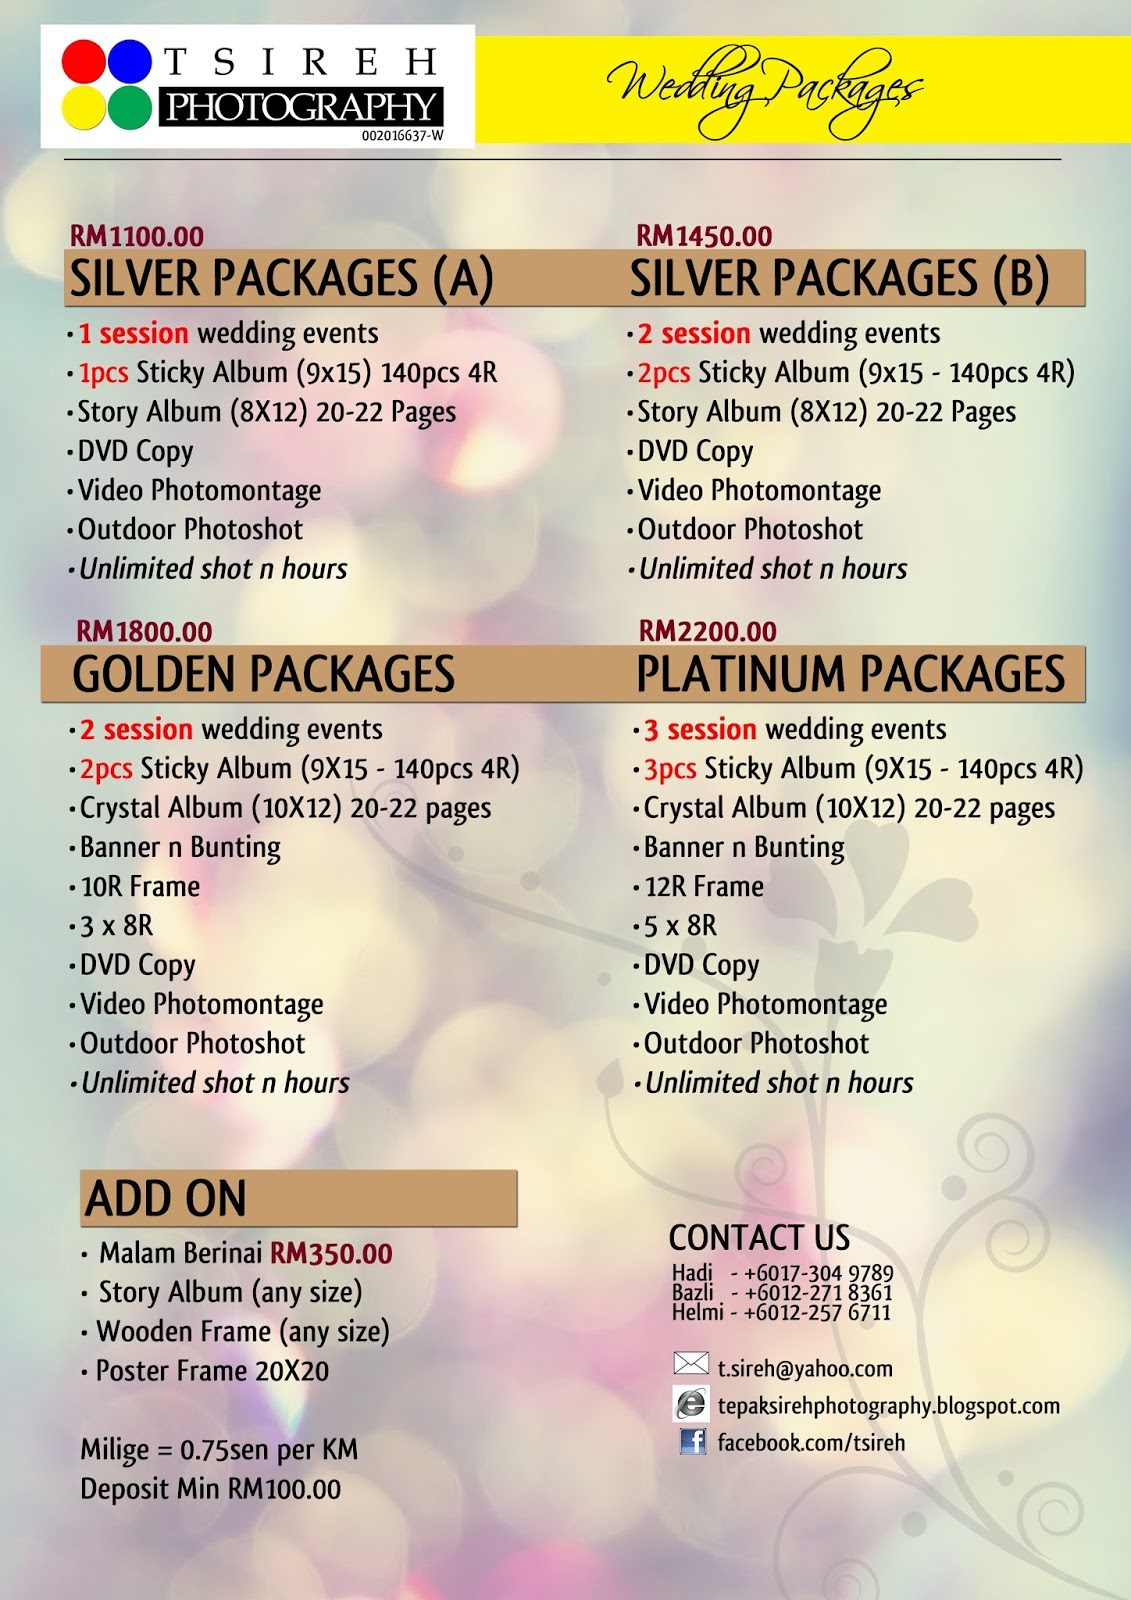 Wedding photography packages pengantinkahwincom for Best wedding photography packages